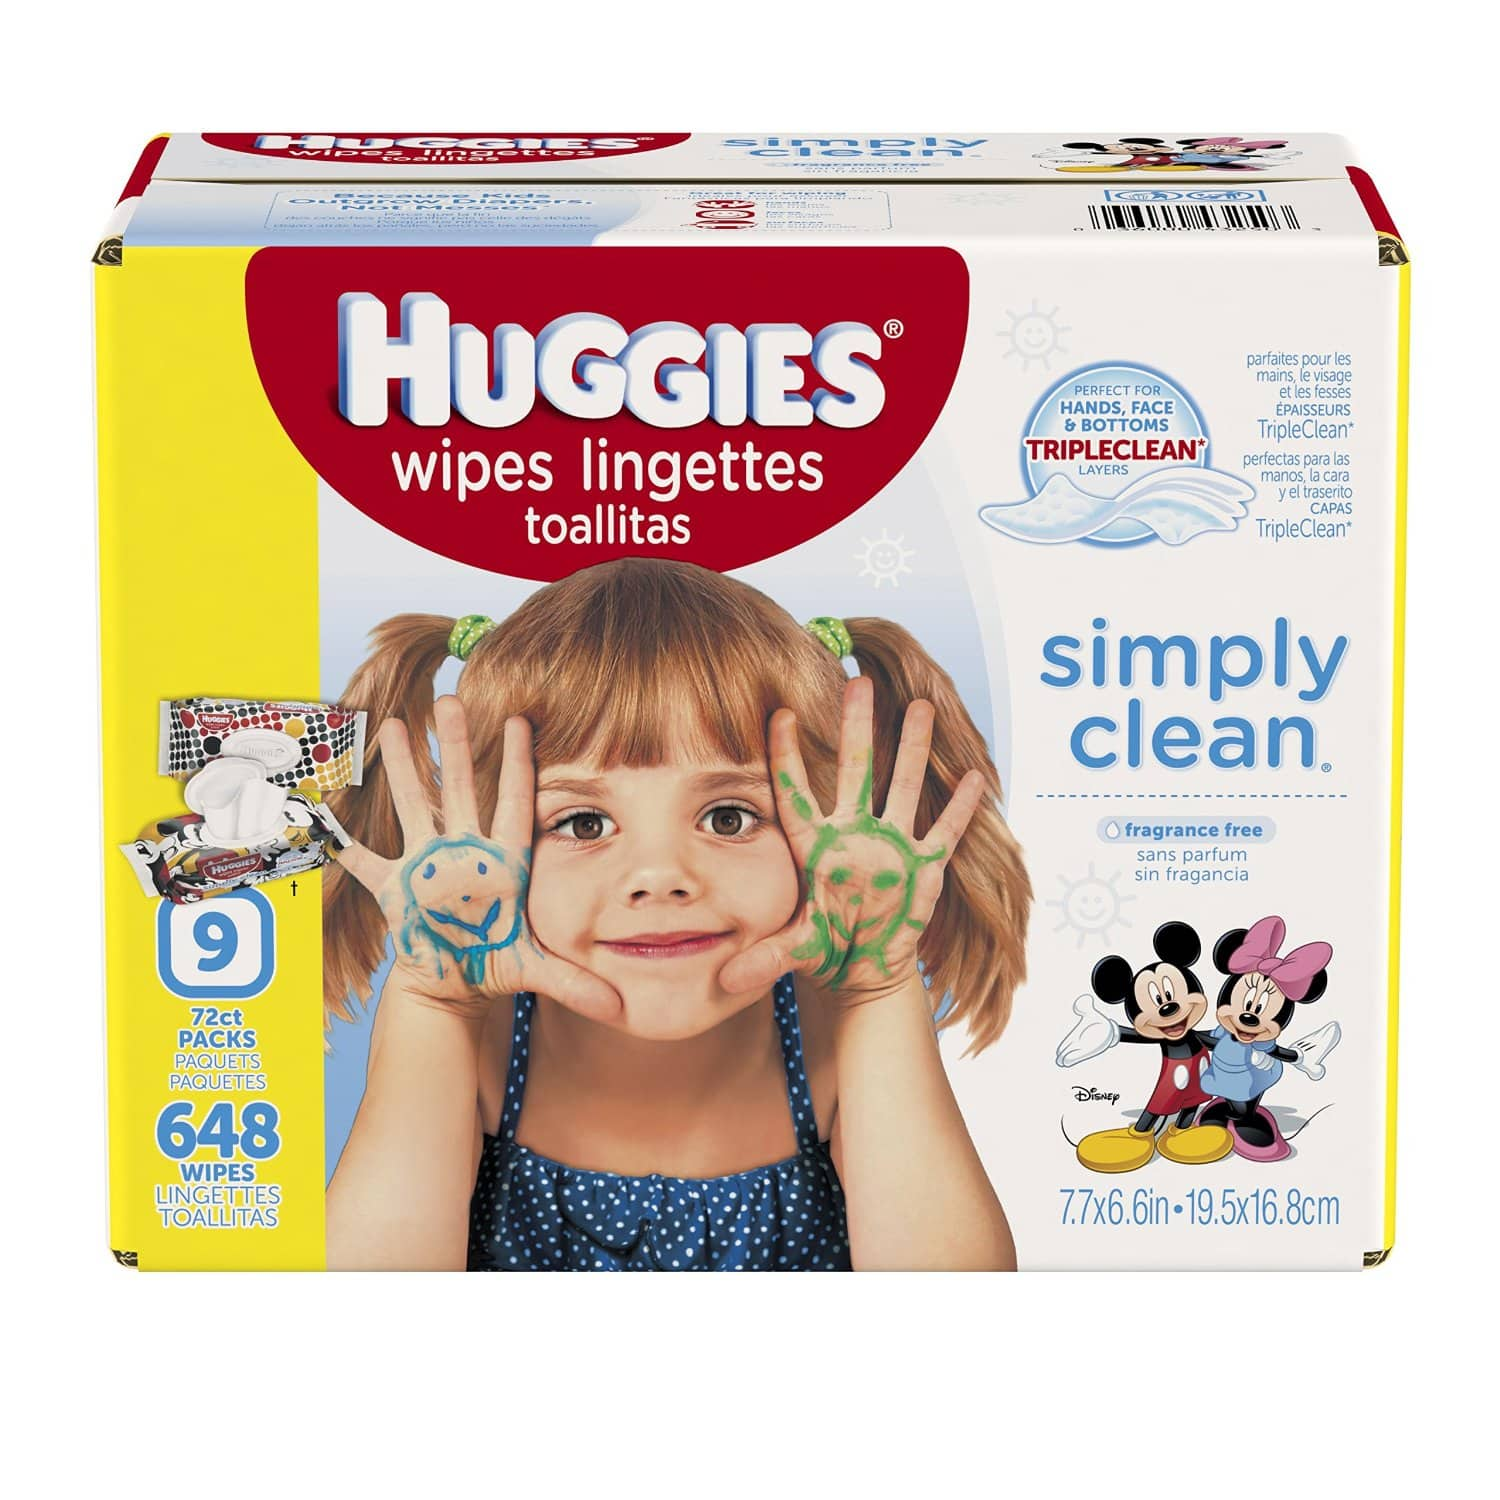 Huggies wipes 648ct for $7.78 or less after 35% coupon and S&S @Amazon